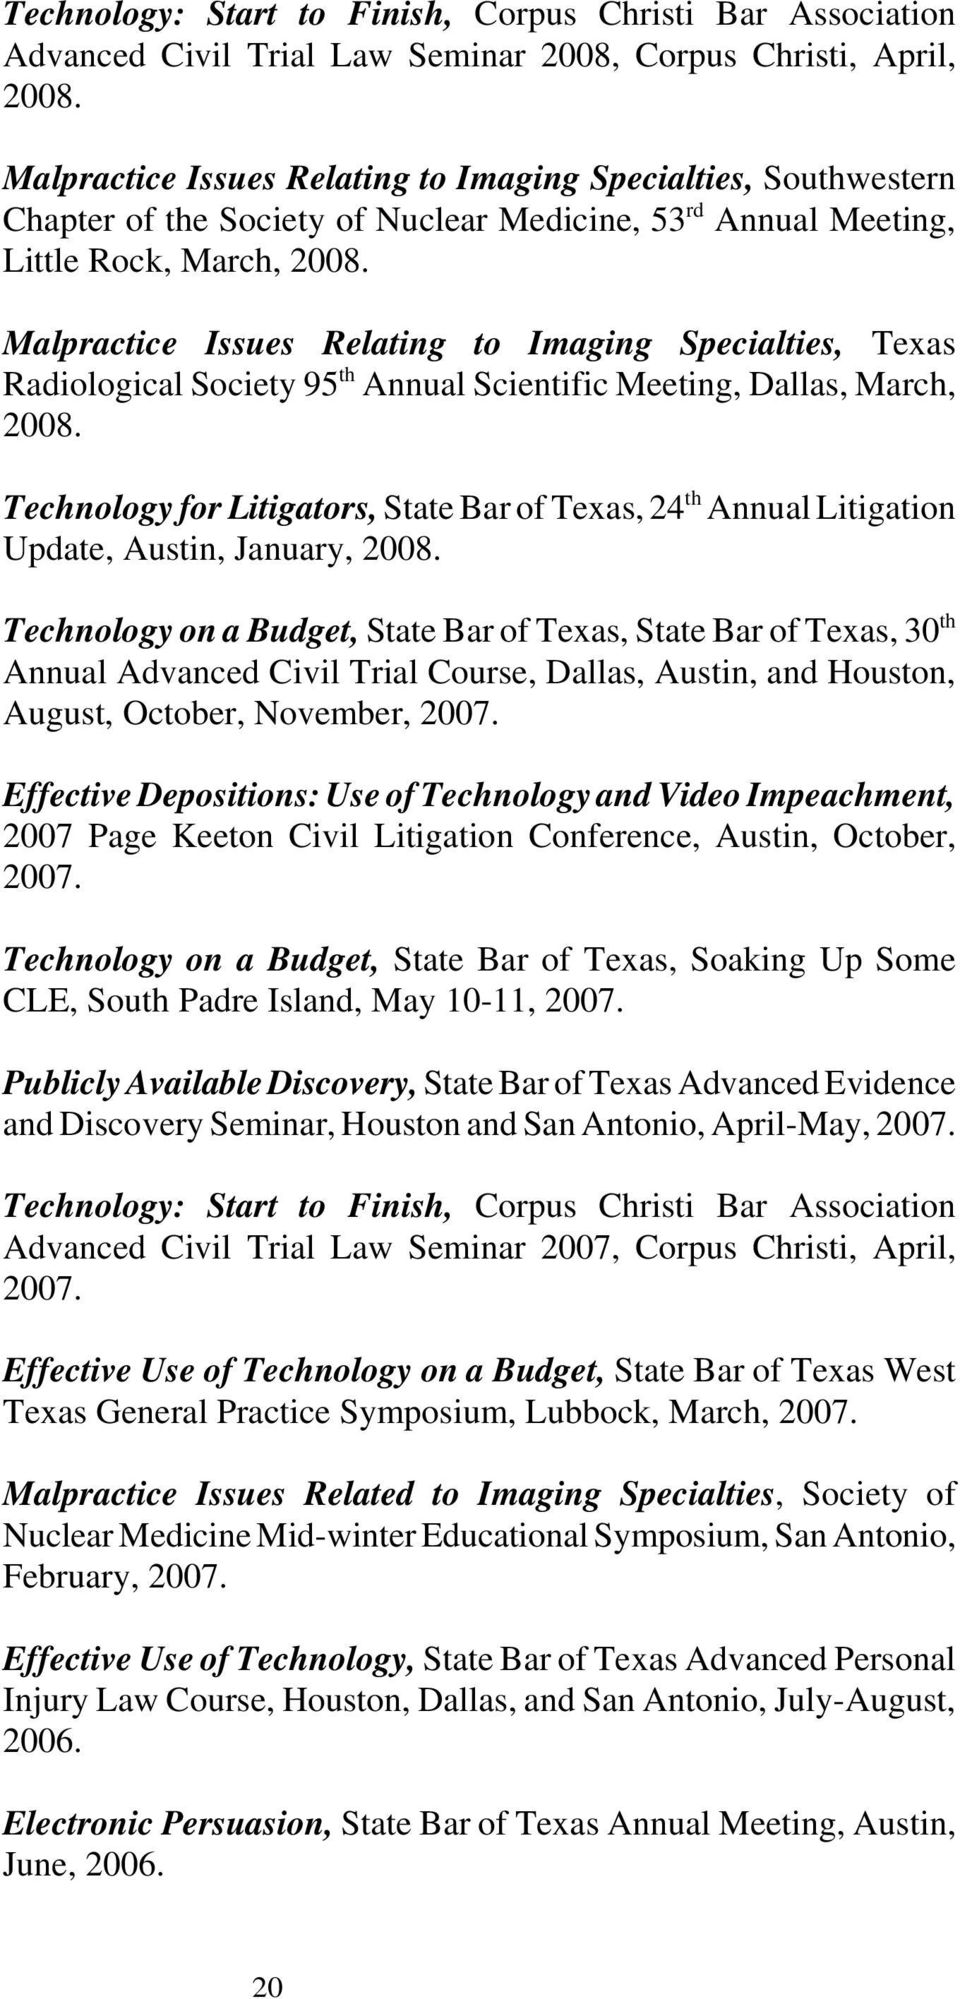 Malpractice Issues Relating to Imaging Specialties, Texas Radiological Society 95 th Annual Scientific Meeting, Dallas, March, 2008.